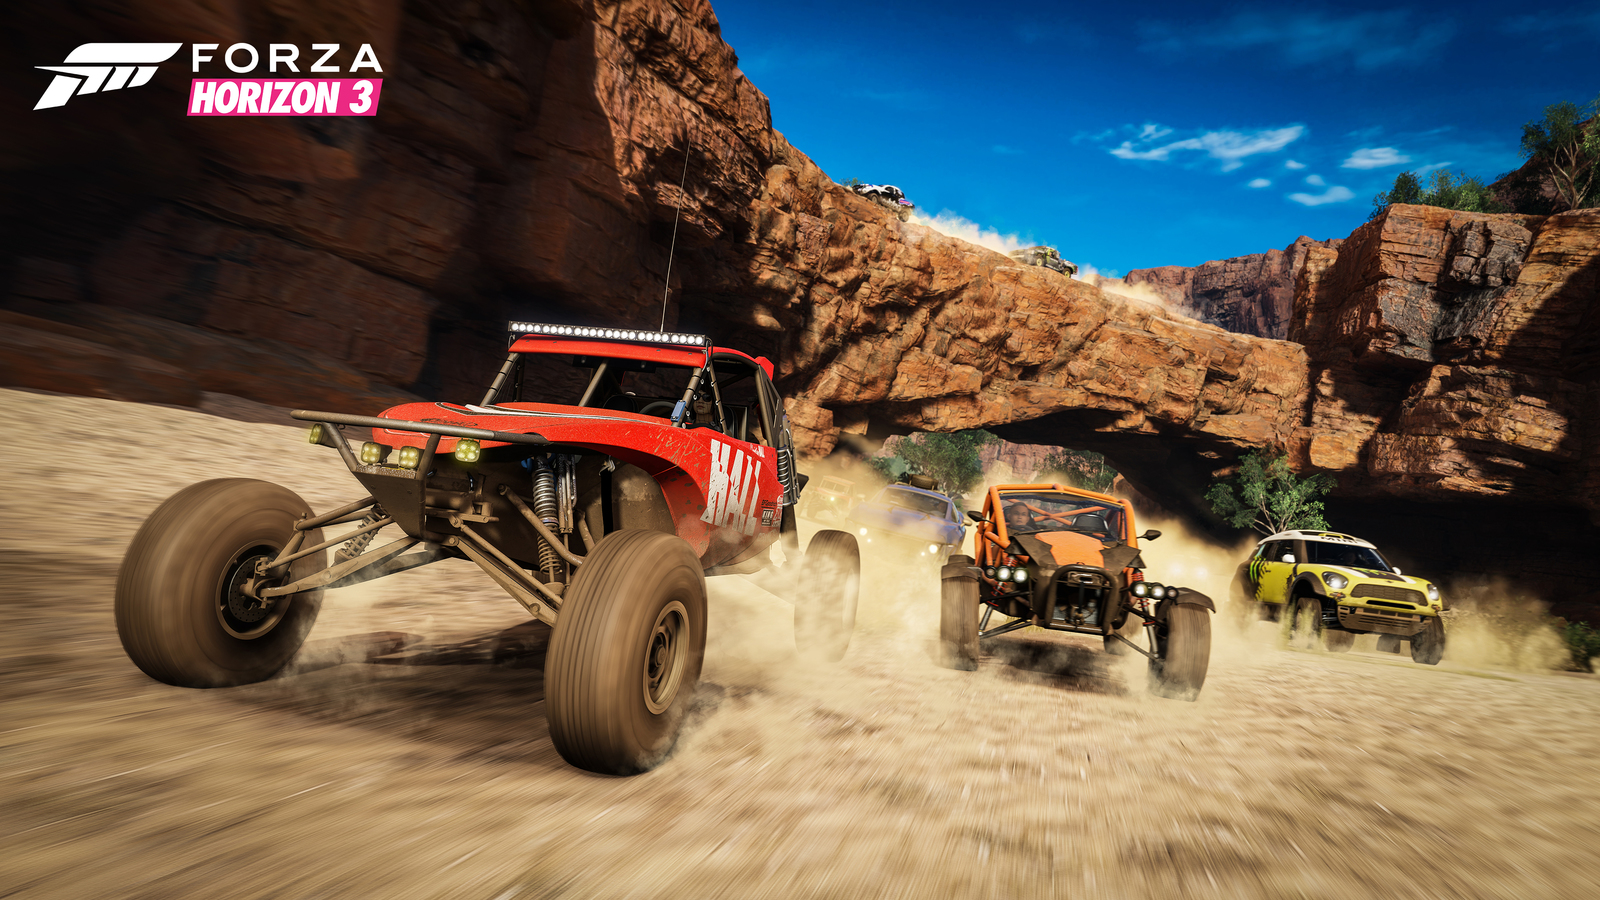 Forza Horizon 3 for Xbox One image